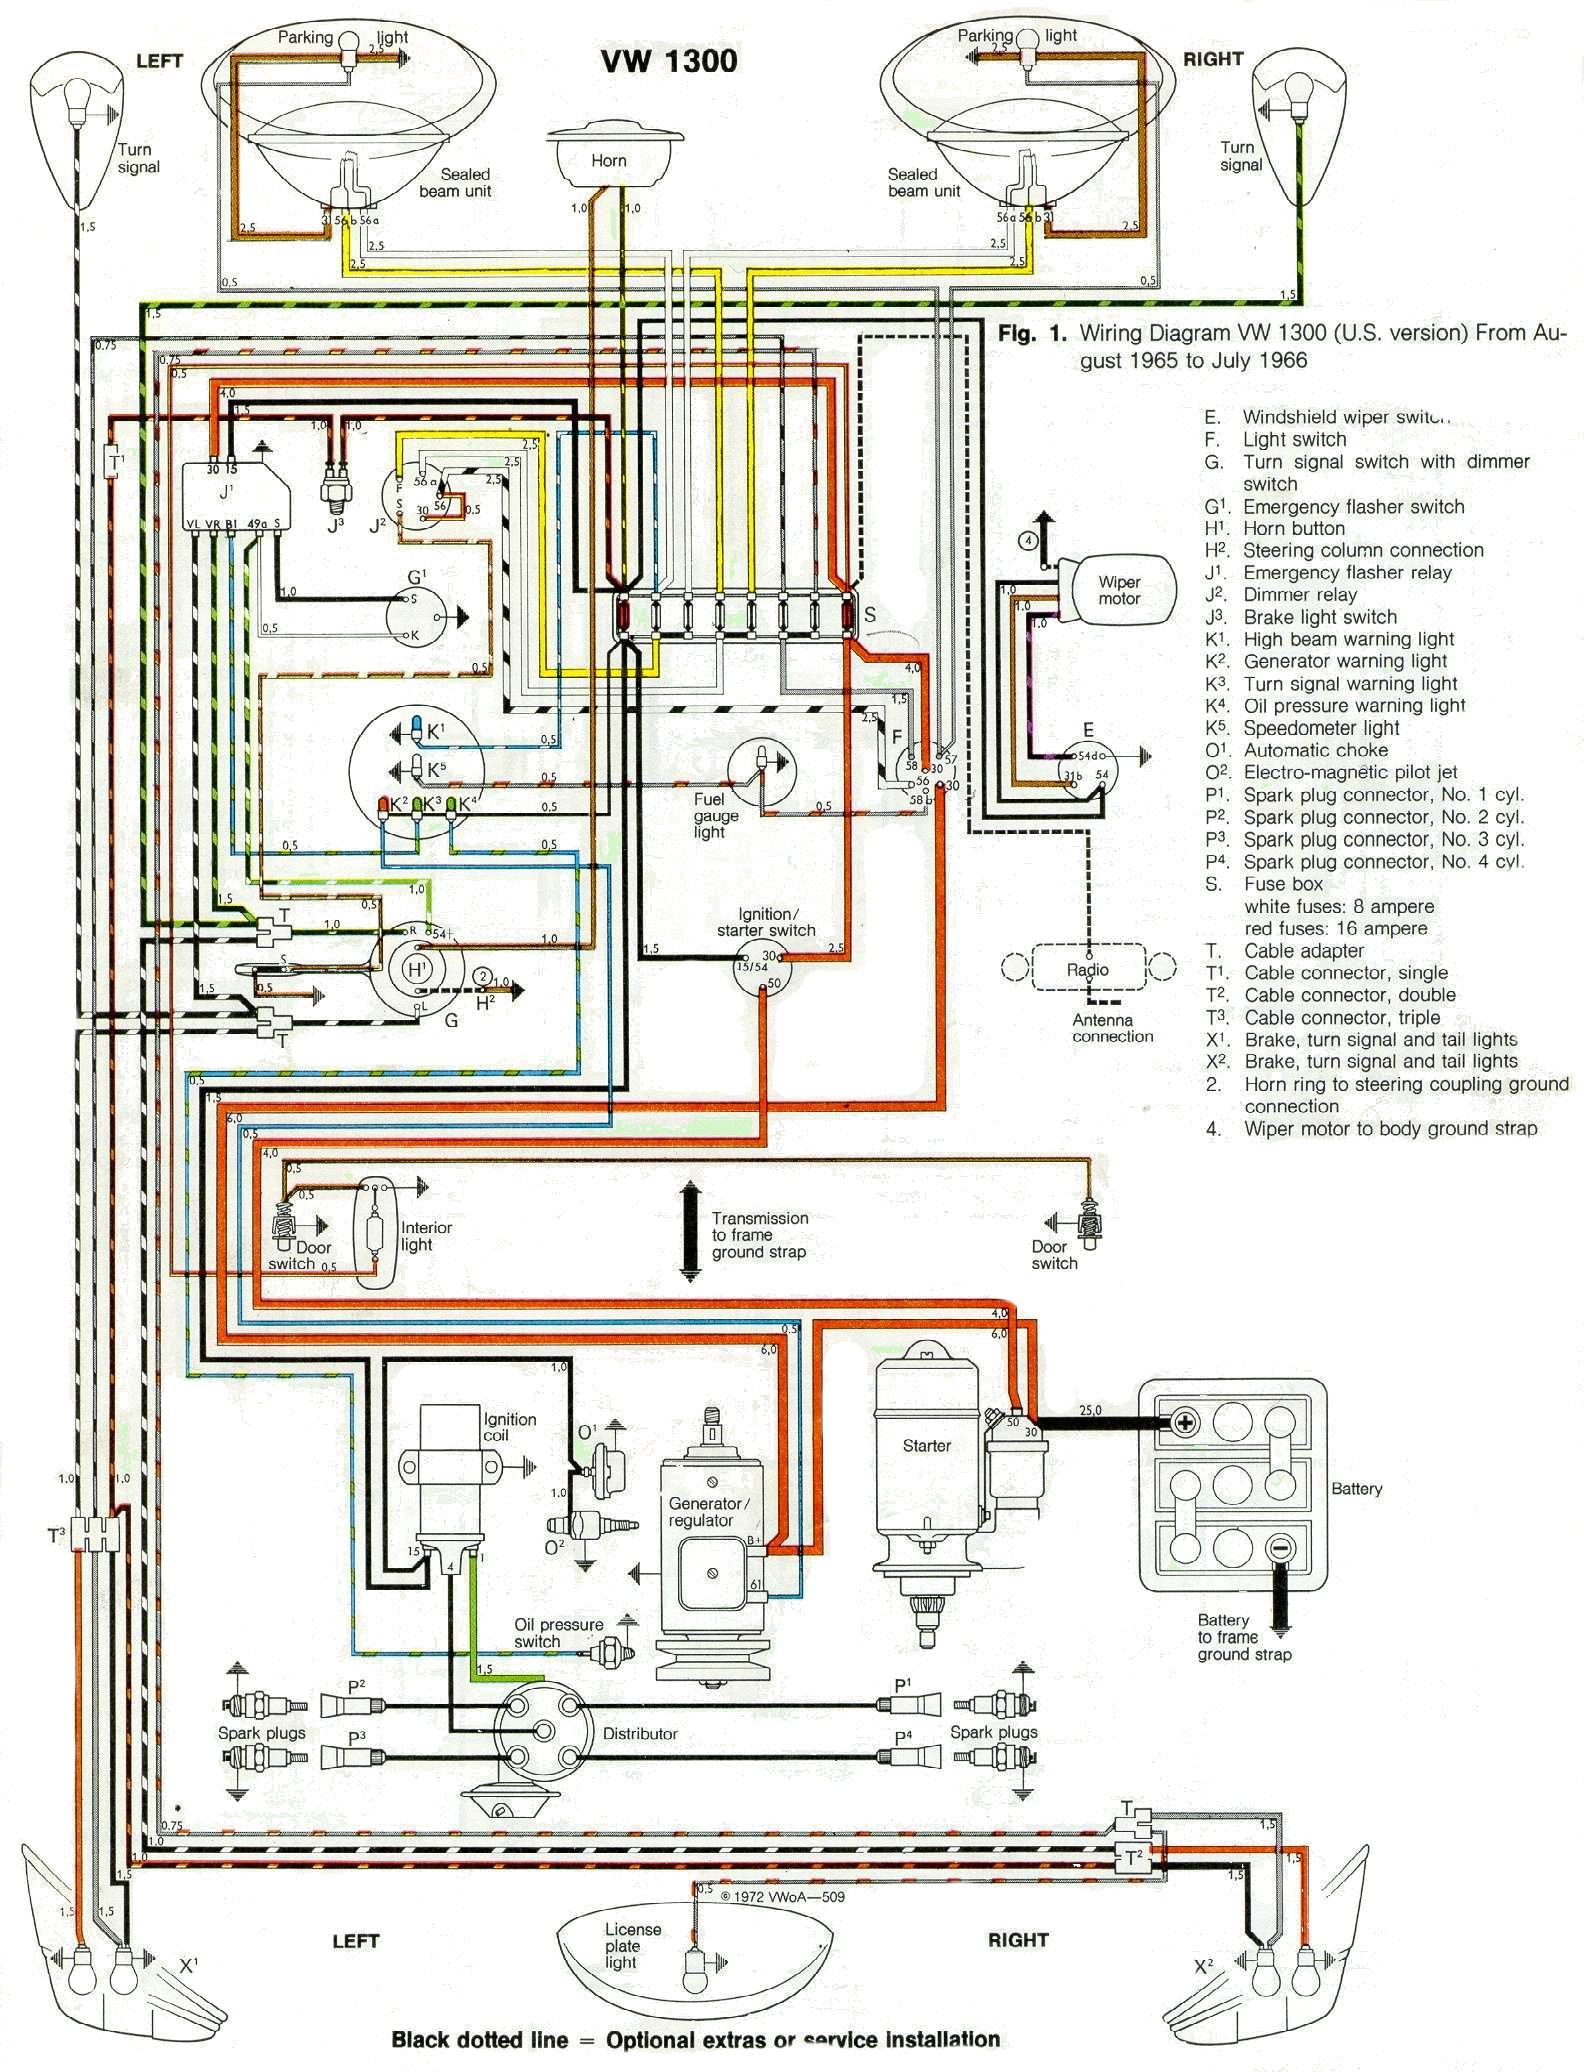 hight resolution of 1966 wiring diagram wiring diagram 1966 vw beetle wiring diagram vw bettle